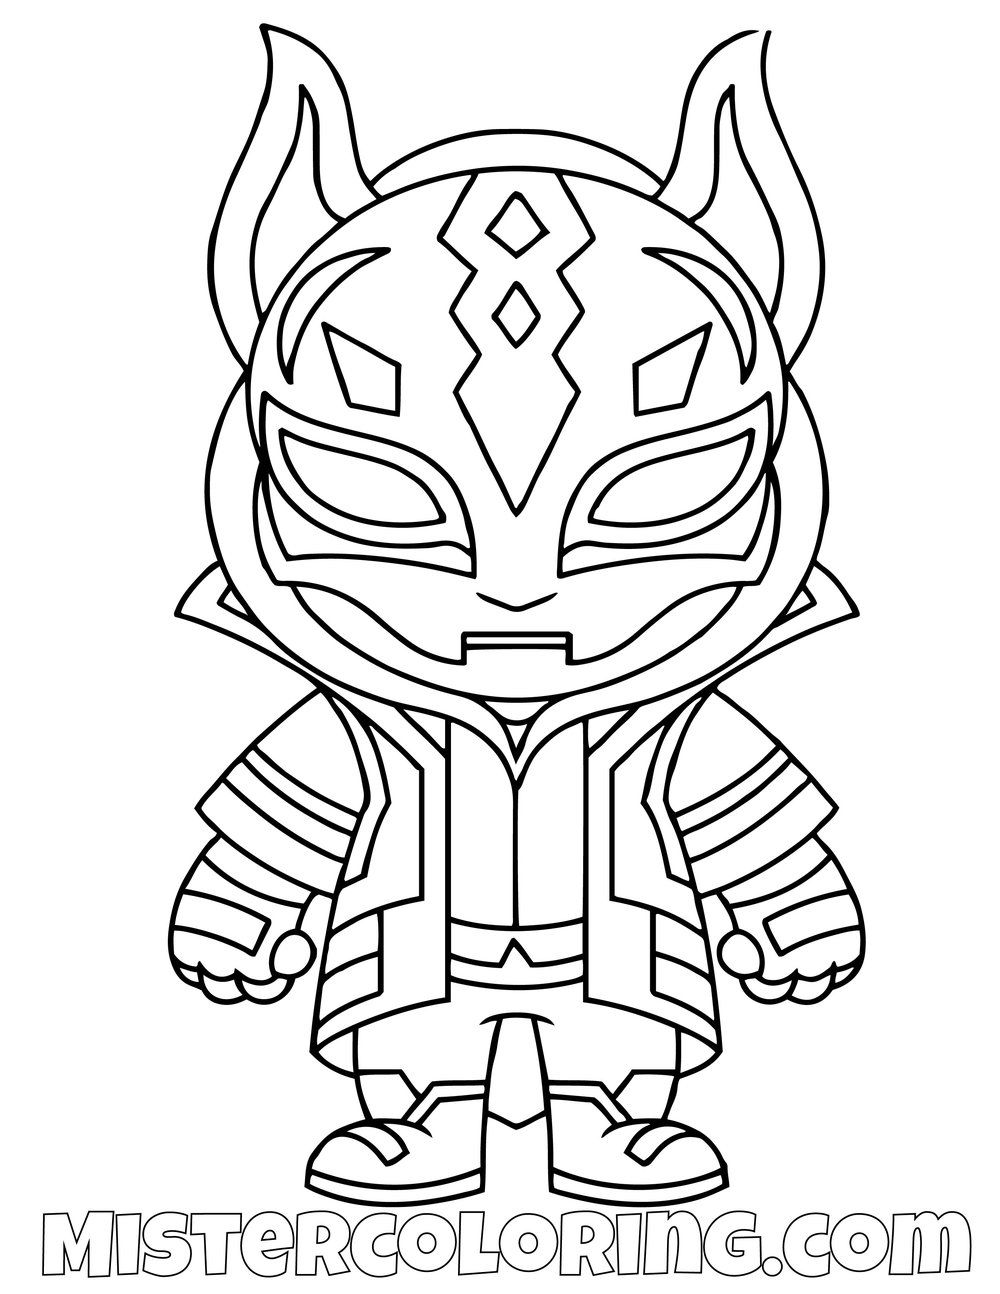 Fortnite Drift Skin Coloring Pages